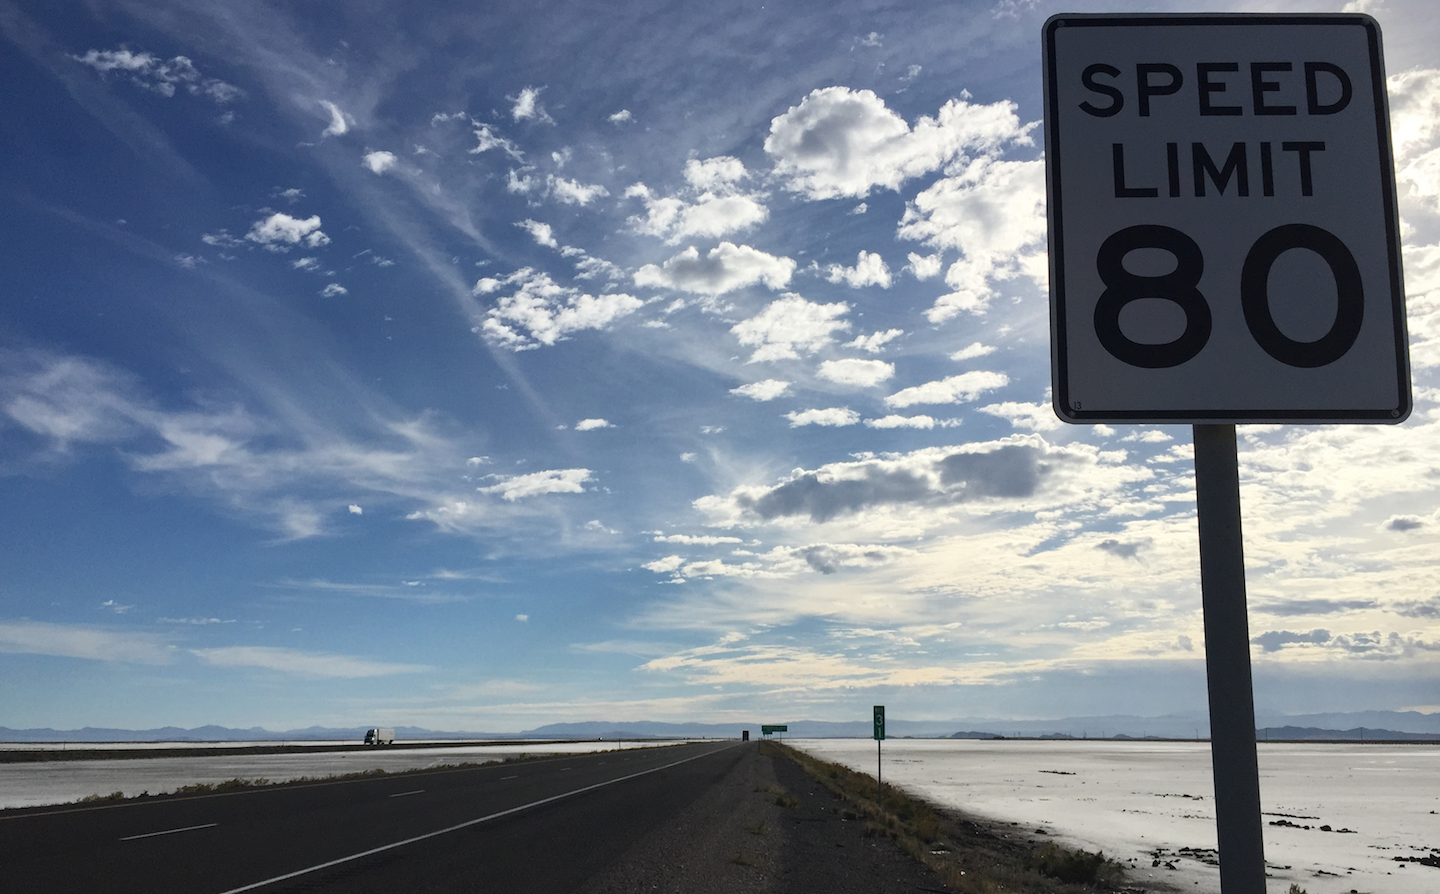 Speed limit sign in Utah